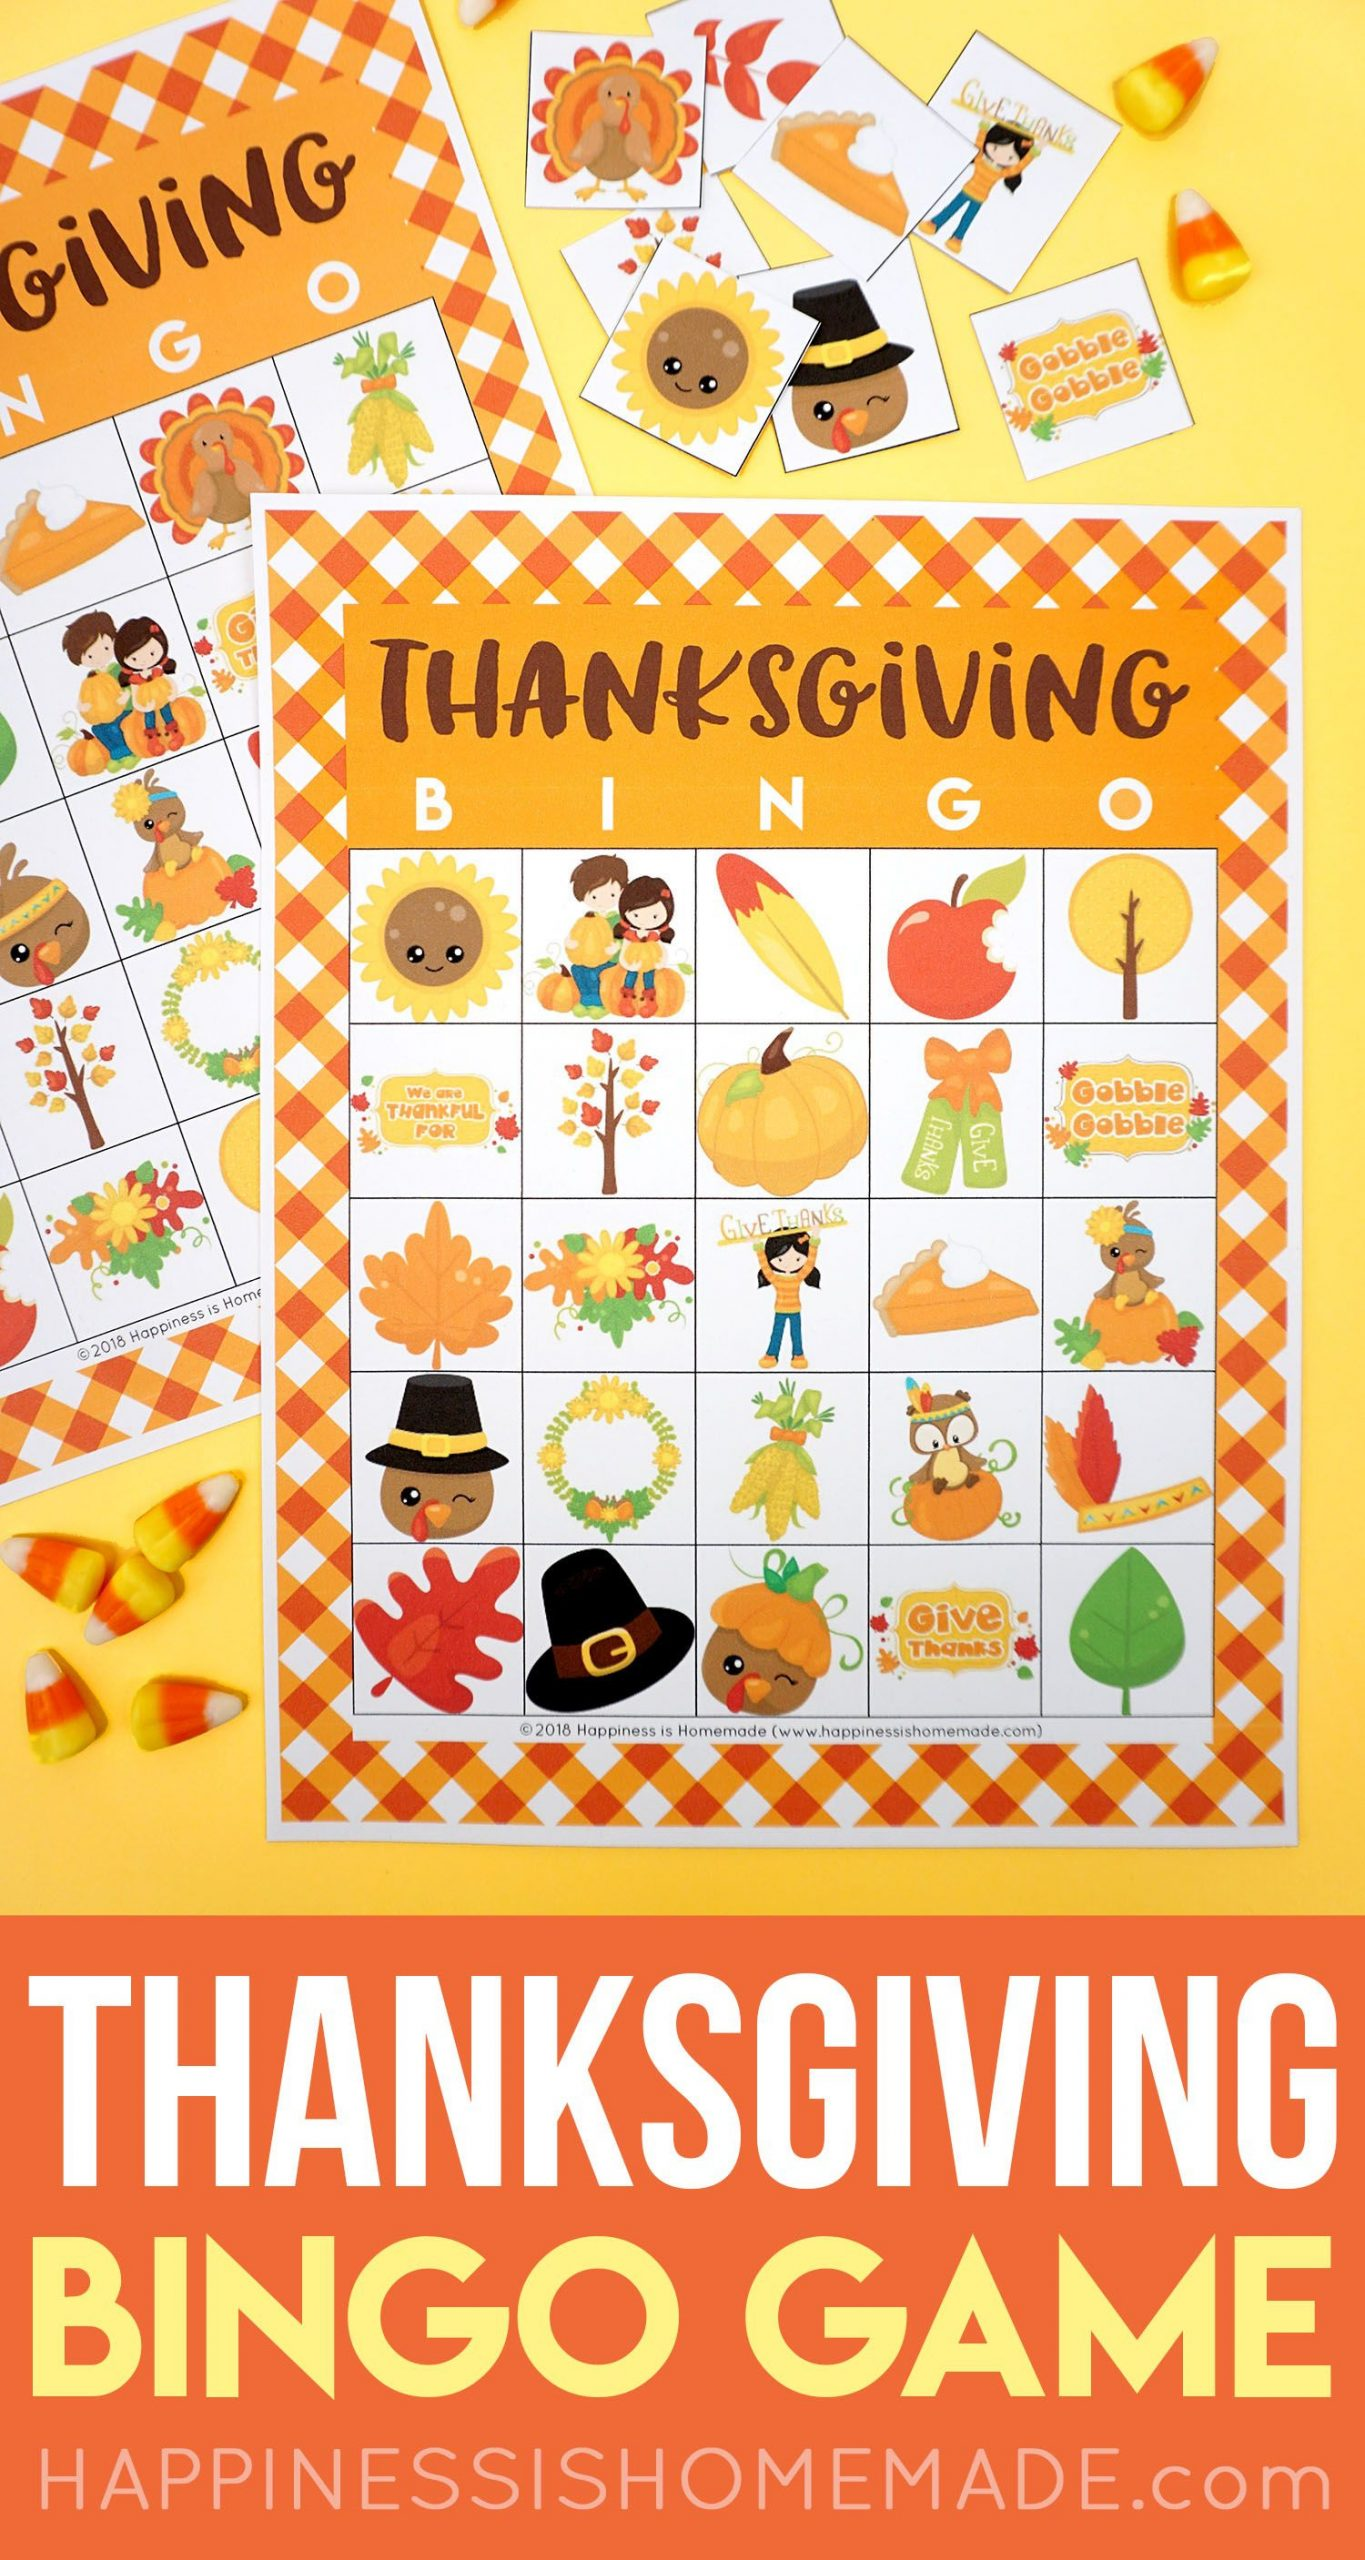 Printable Thanksgiving Bingo Cards - This Thanksgiving Bingo